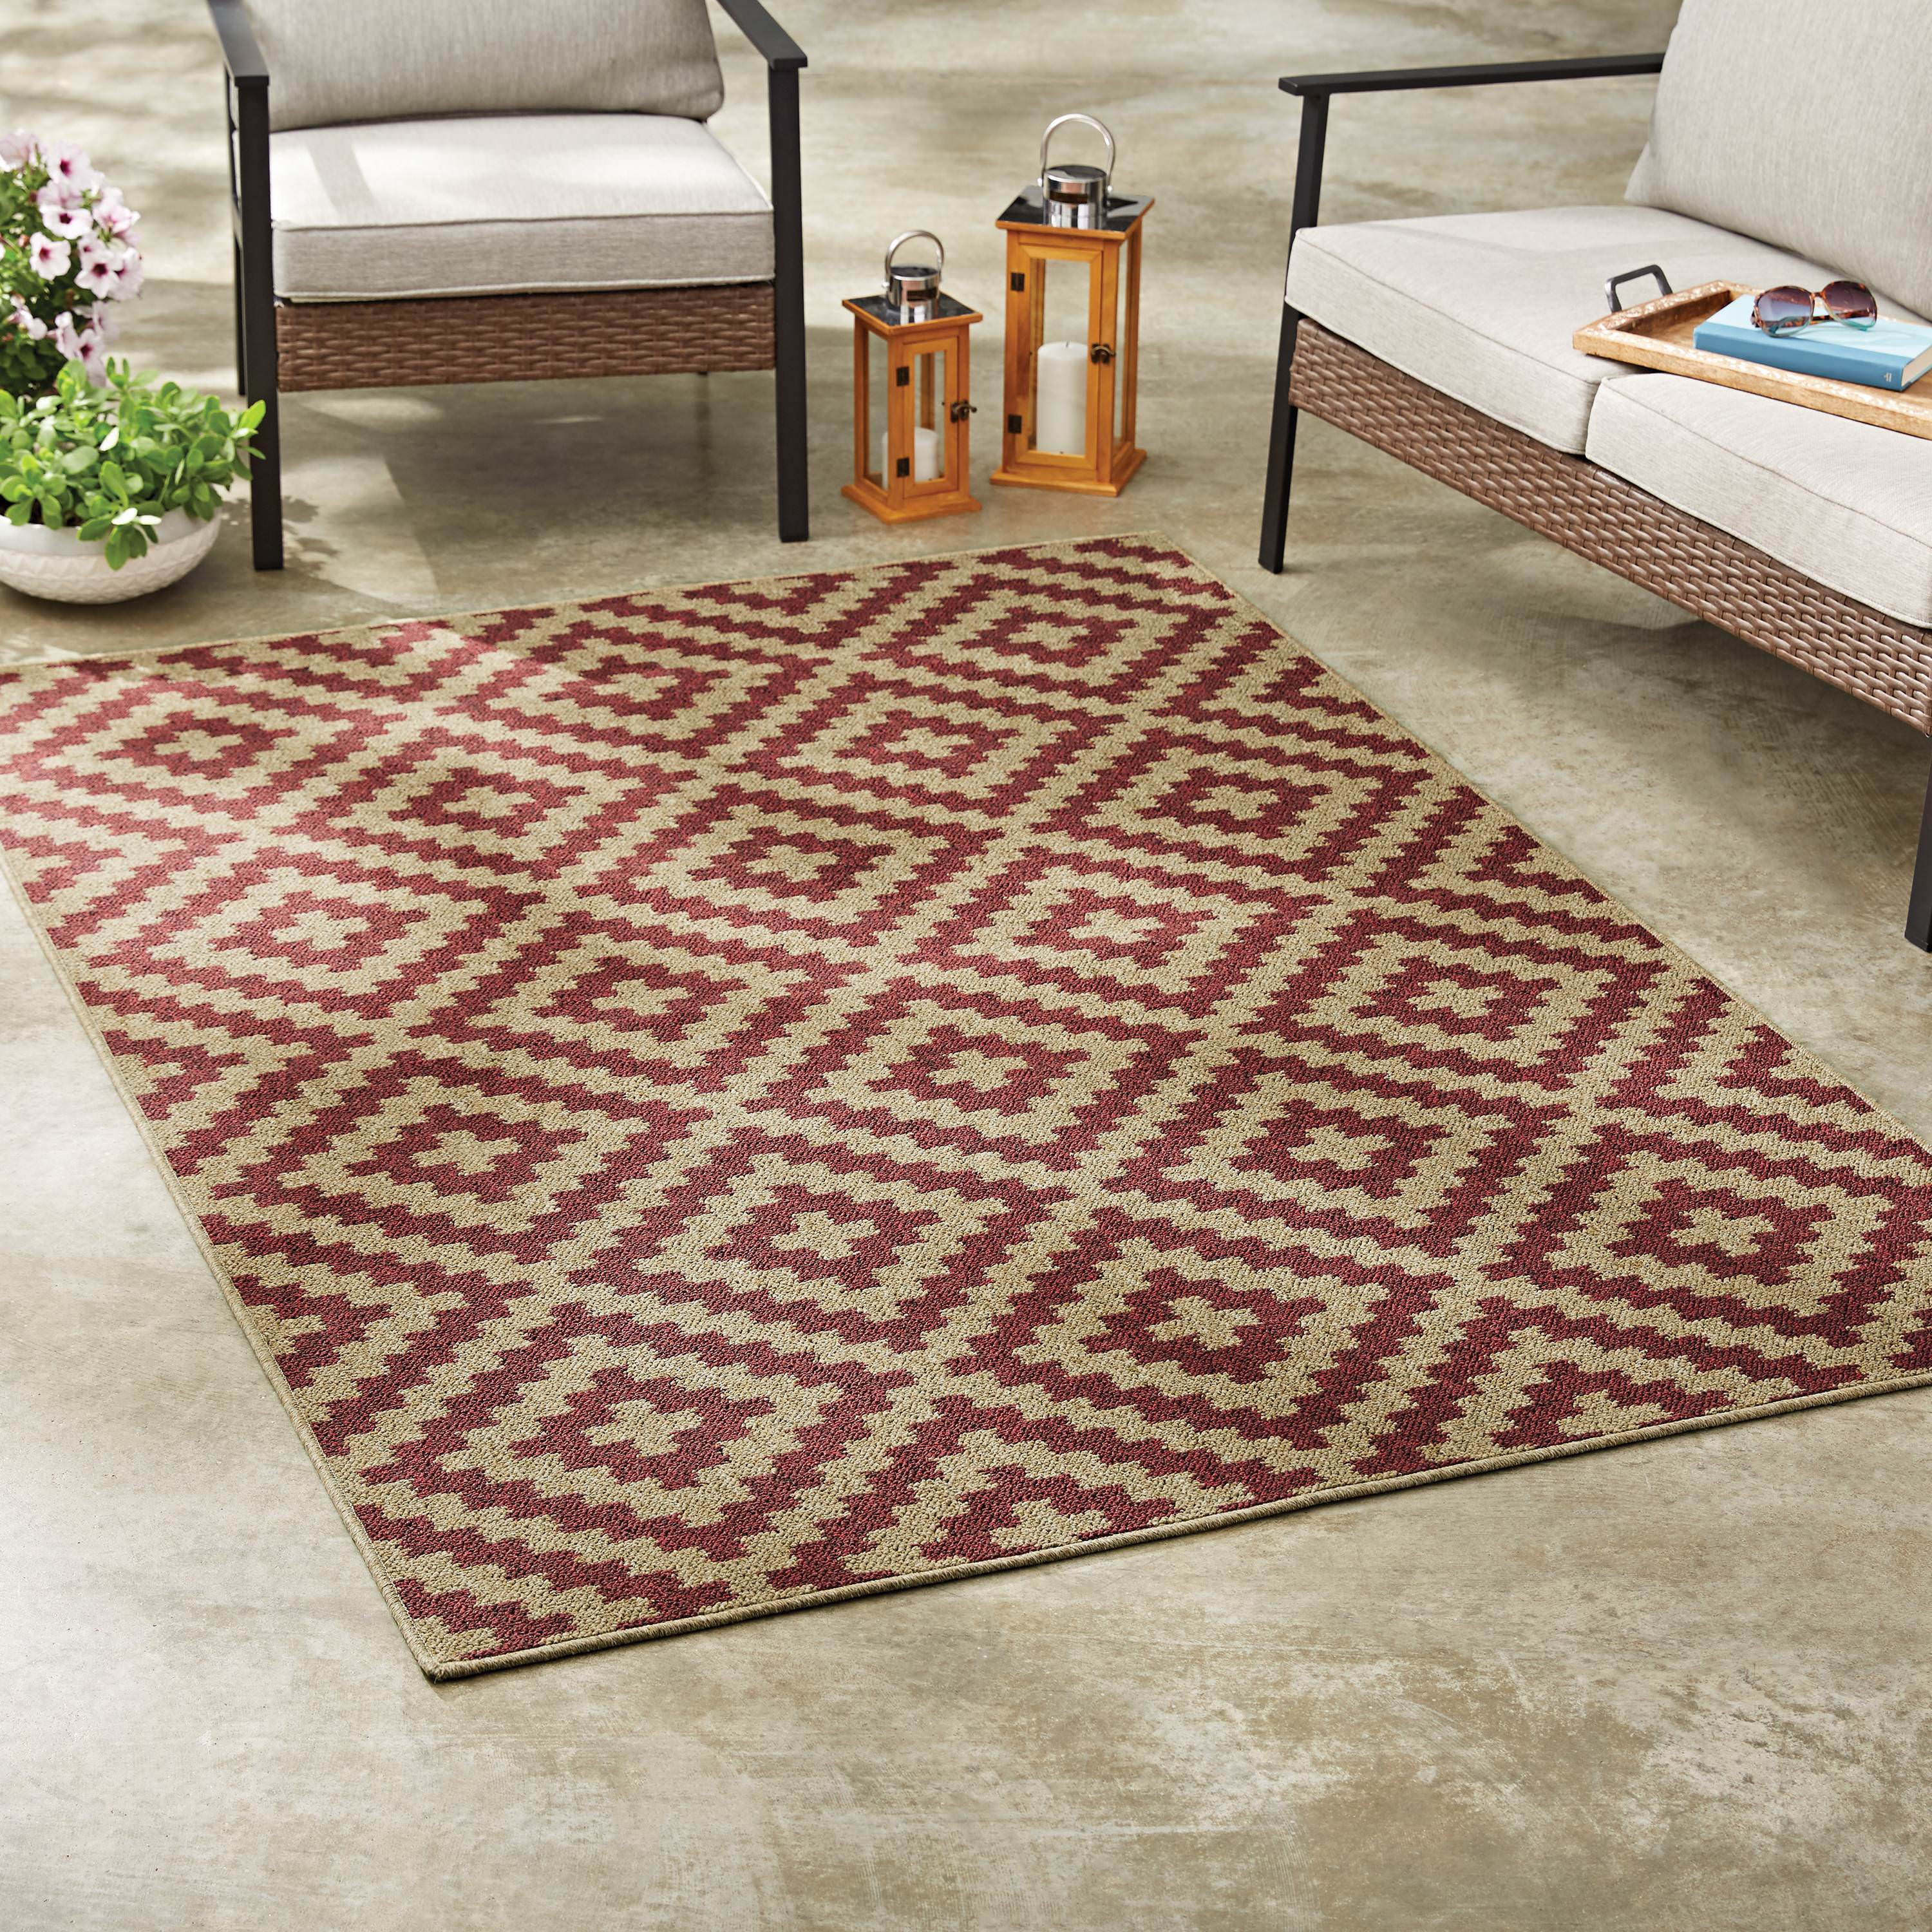 Indoor Outdoor Rugs Walmart Com Walmart Com